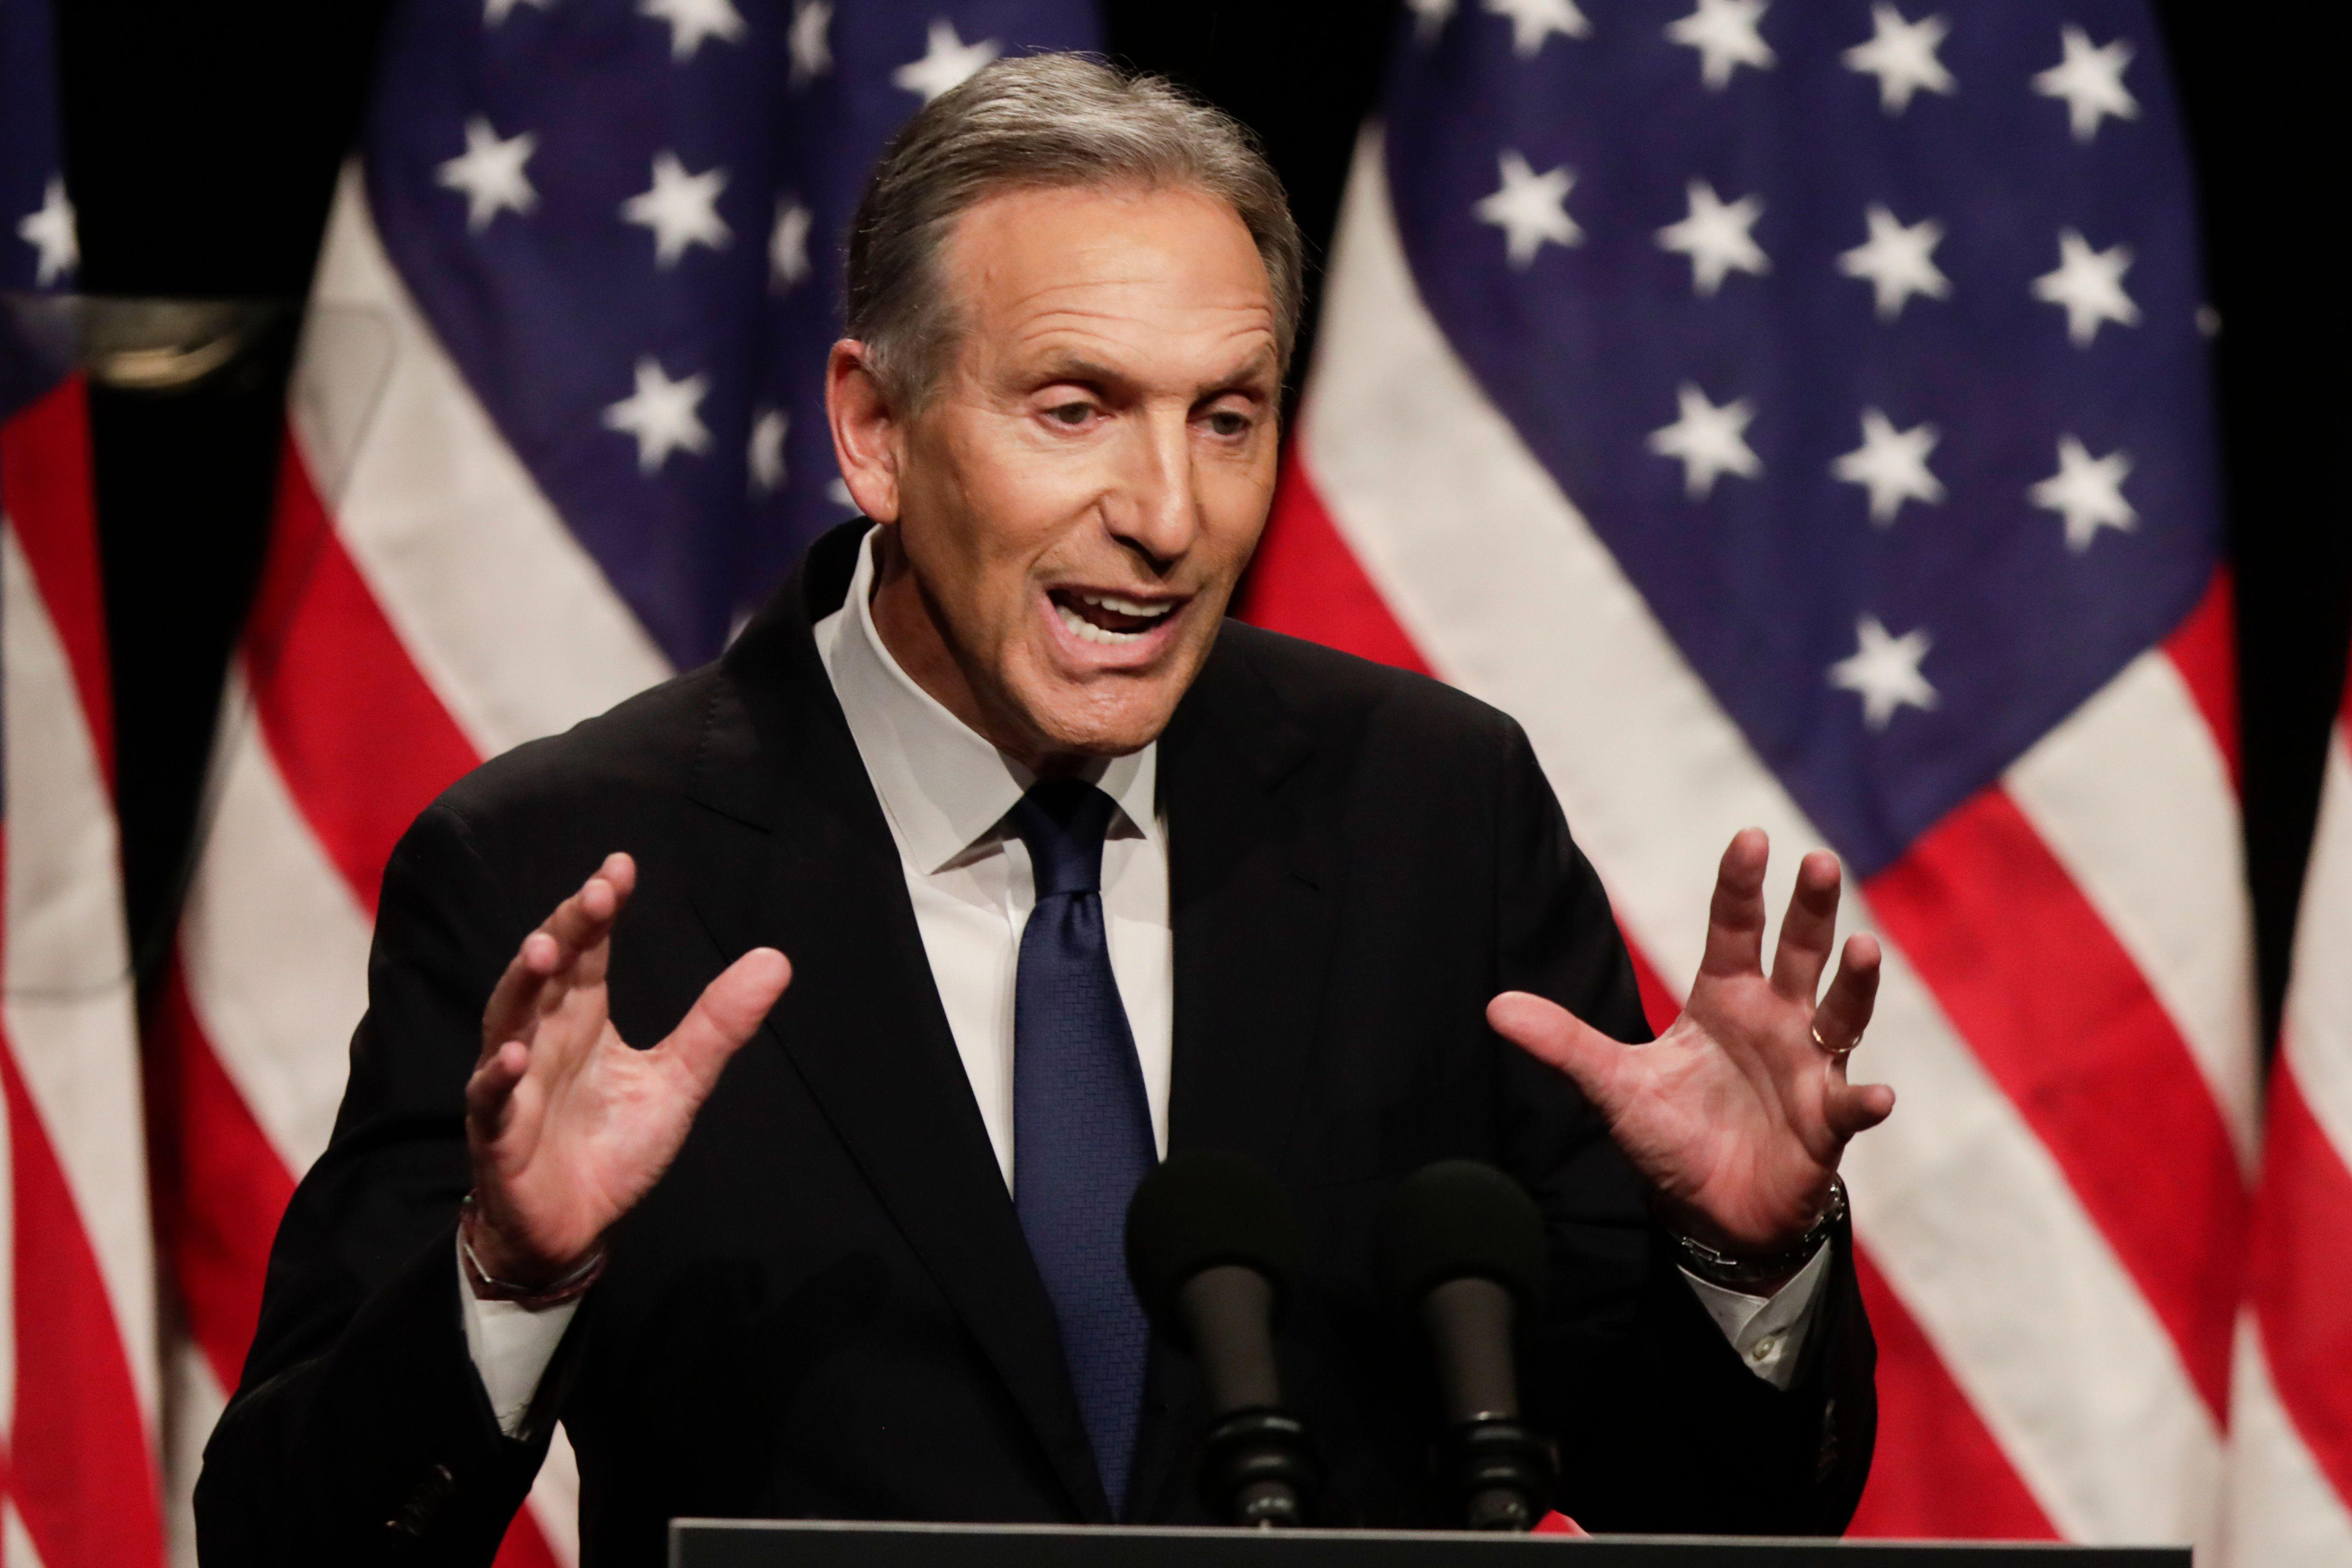 Billionaire investor who predicted Trump's victory doubts Howard Schultz has 'the stomach for this'